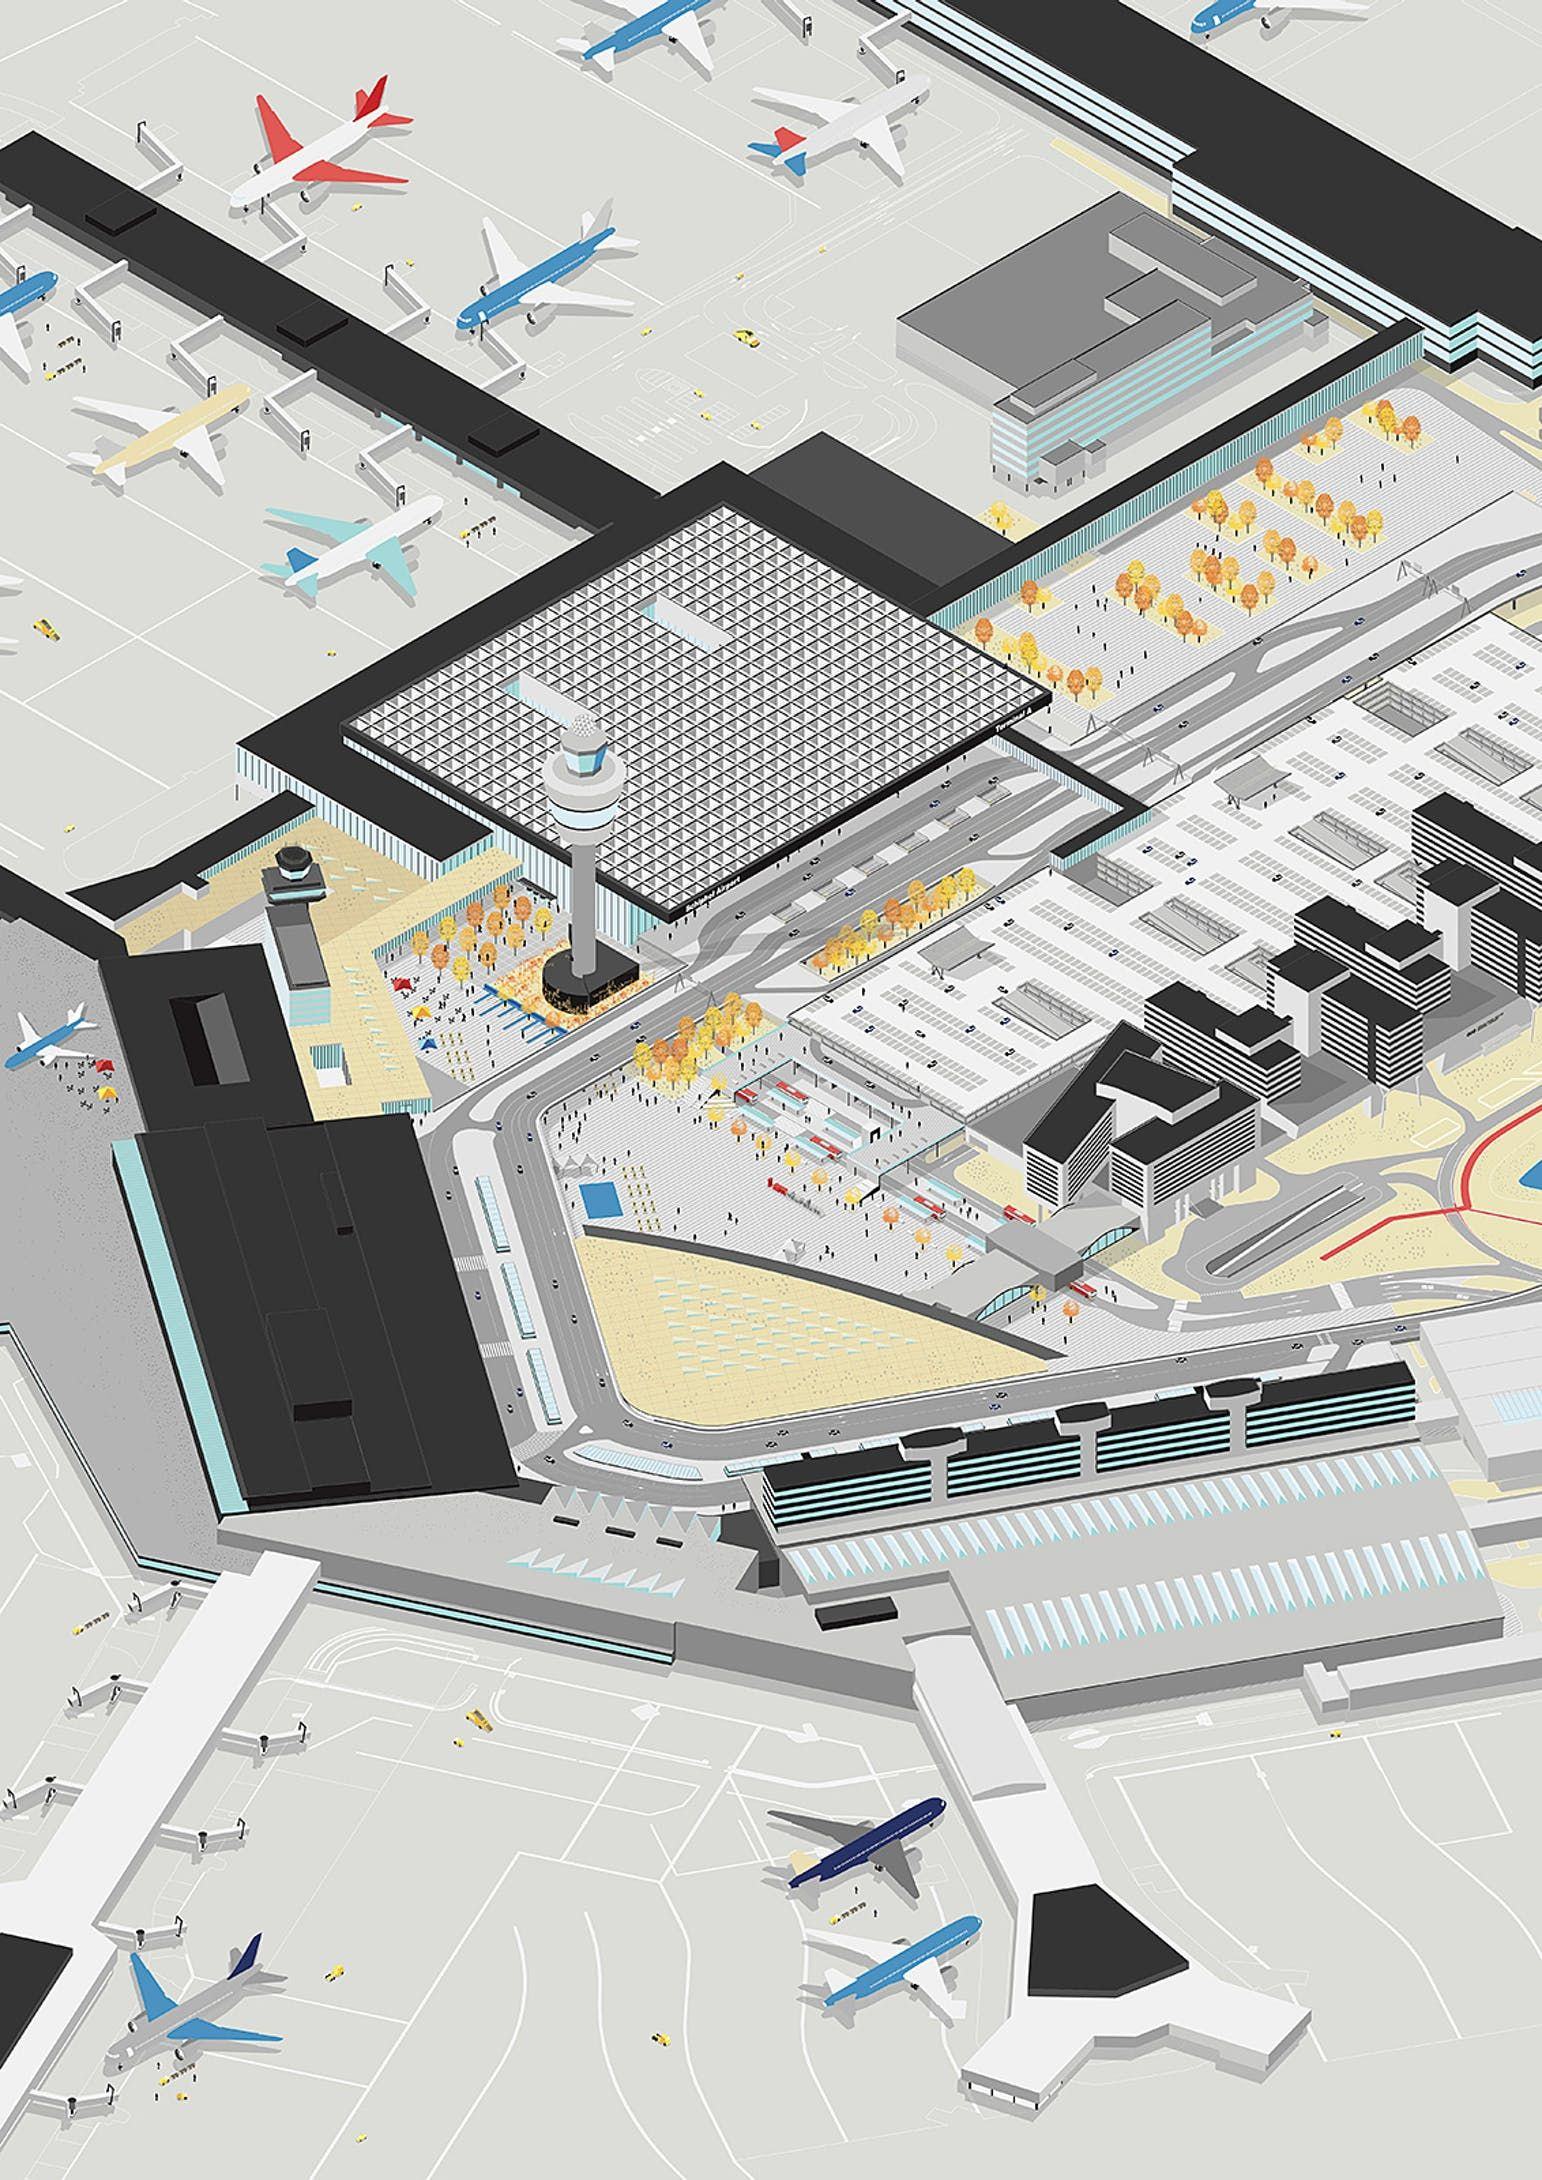 New Images Revealed Of The Winning Amsterdam Airport Schiphol